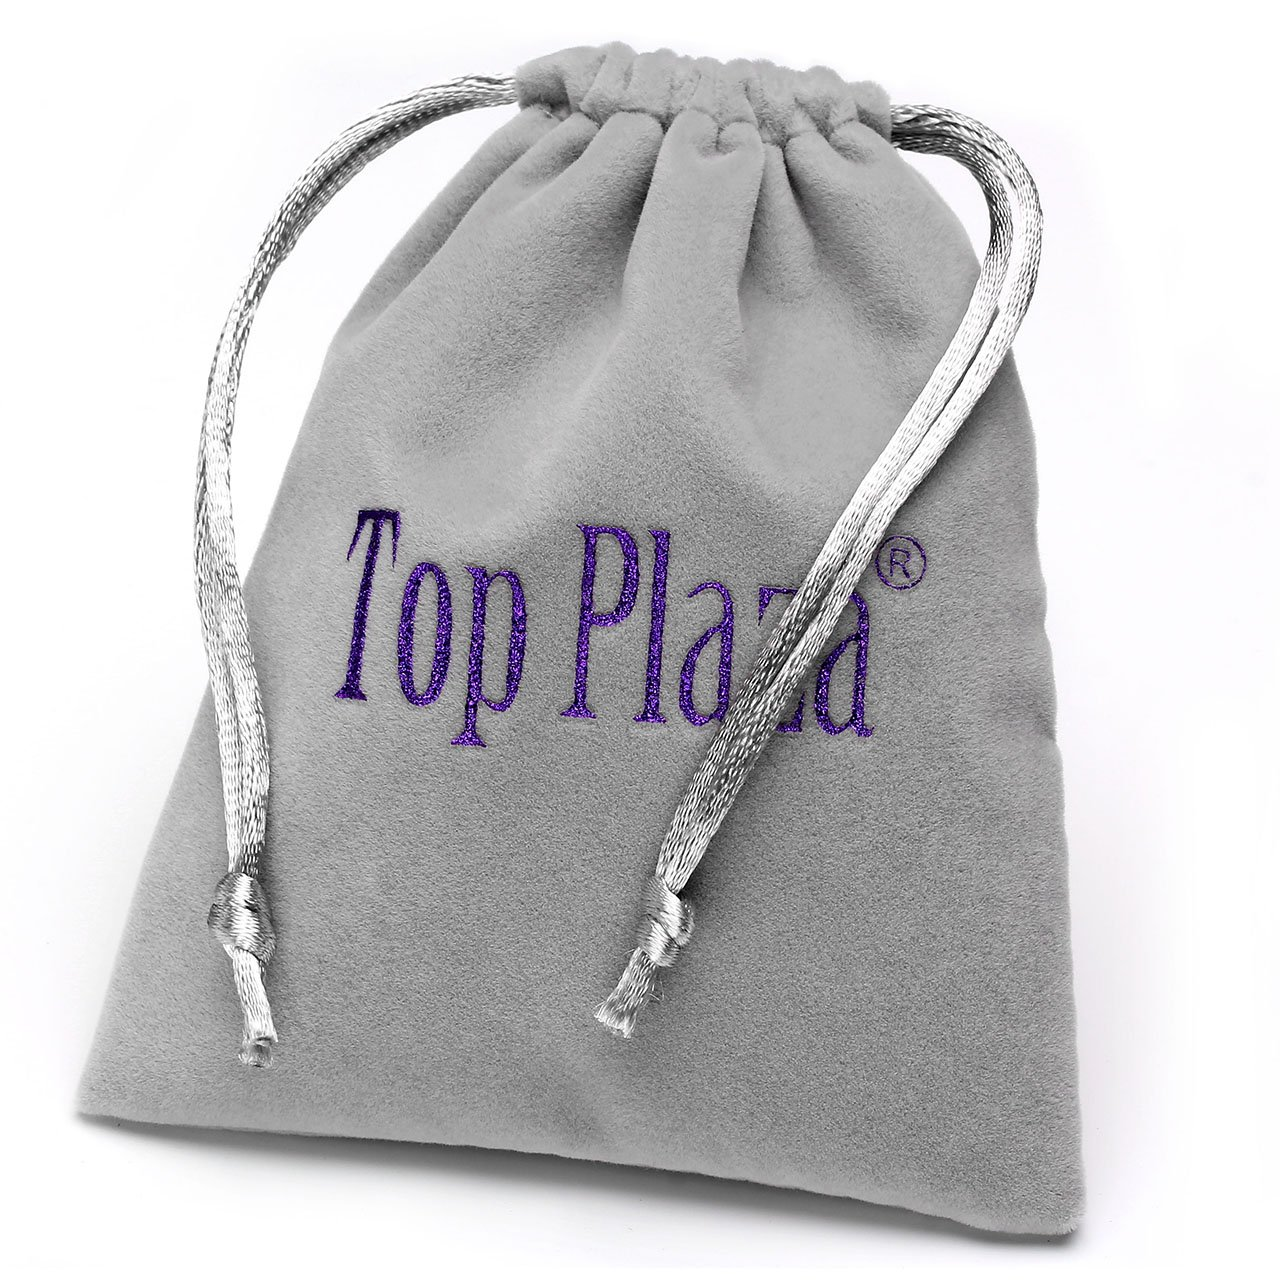 Top Plaza Useful Watch Repair Tool Kit - Watch Battery Band Case Link Open Kit Set by Top Plaza (Image #6)